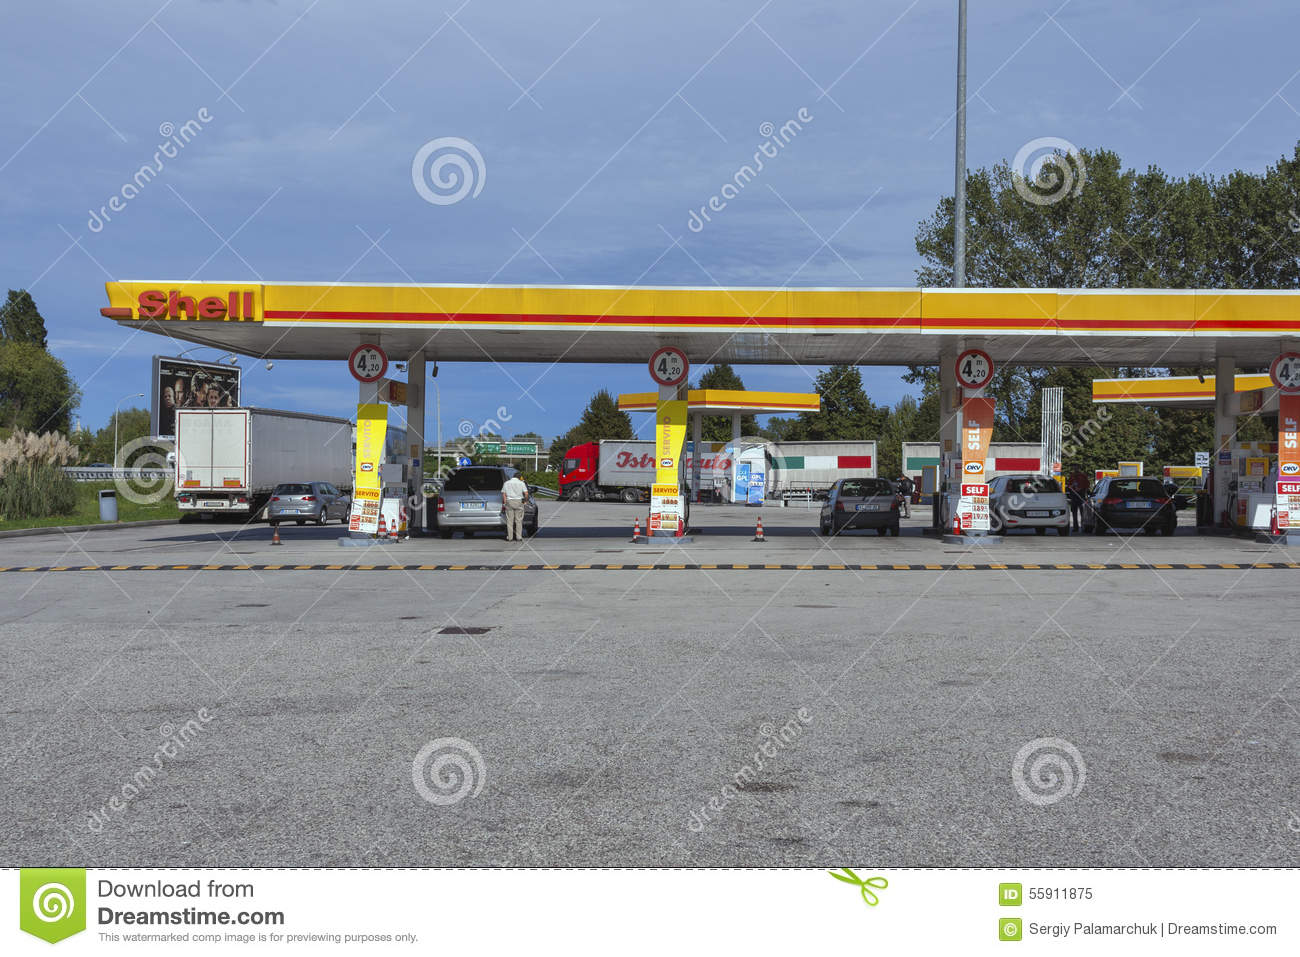 Shell gas station in Italy